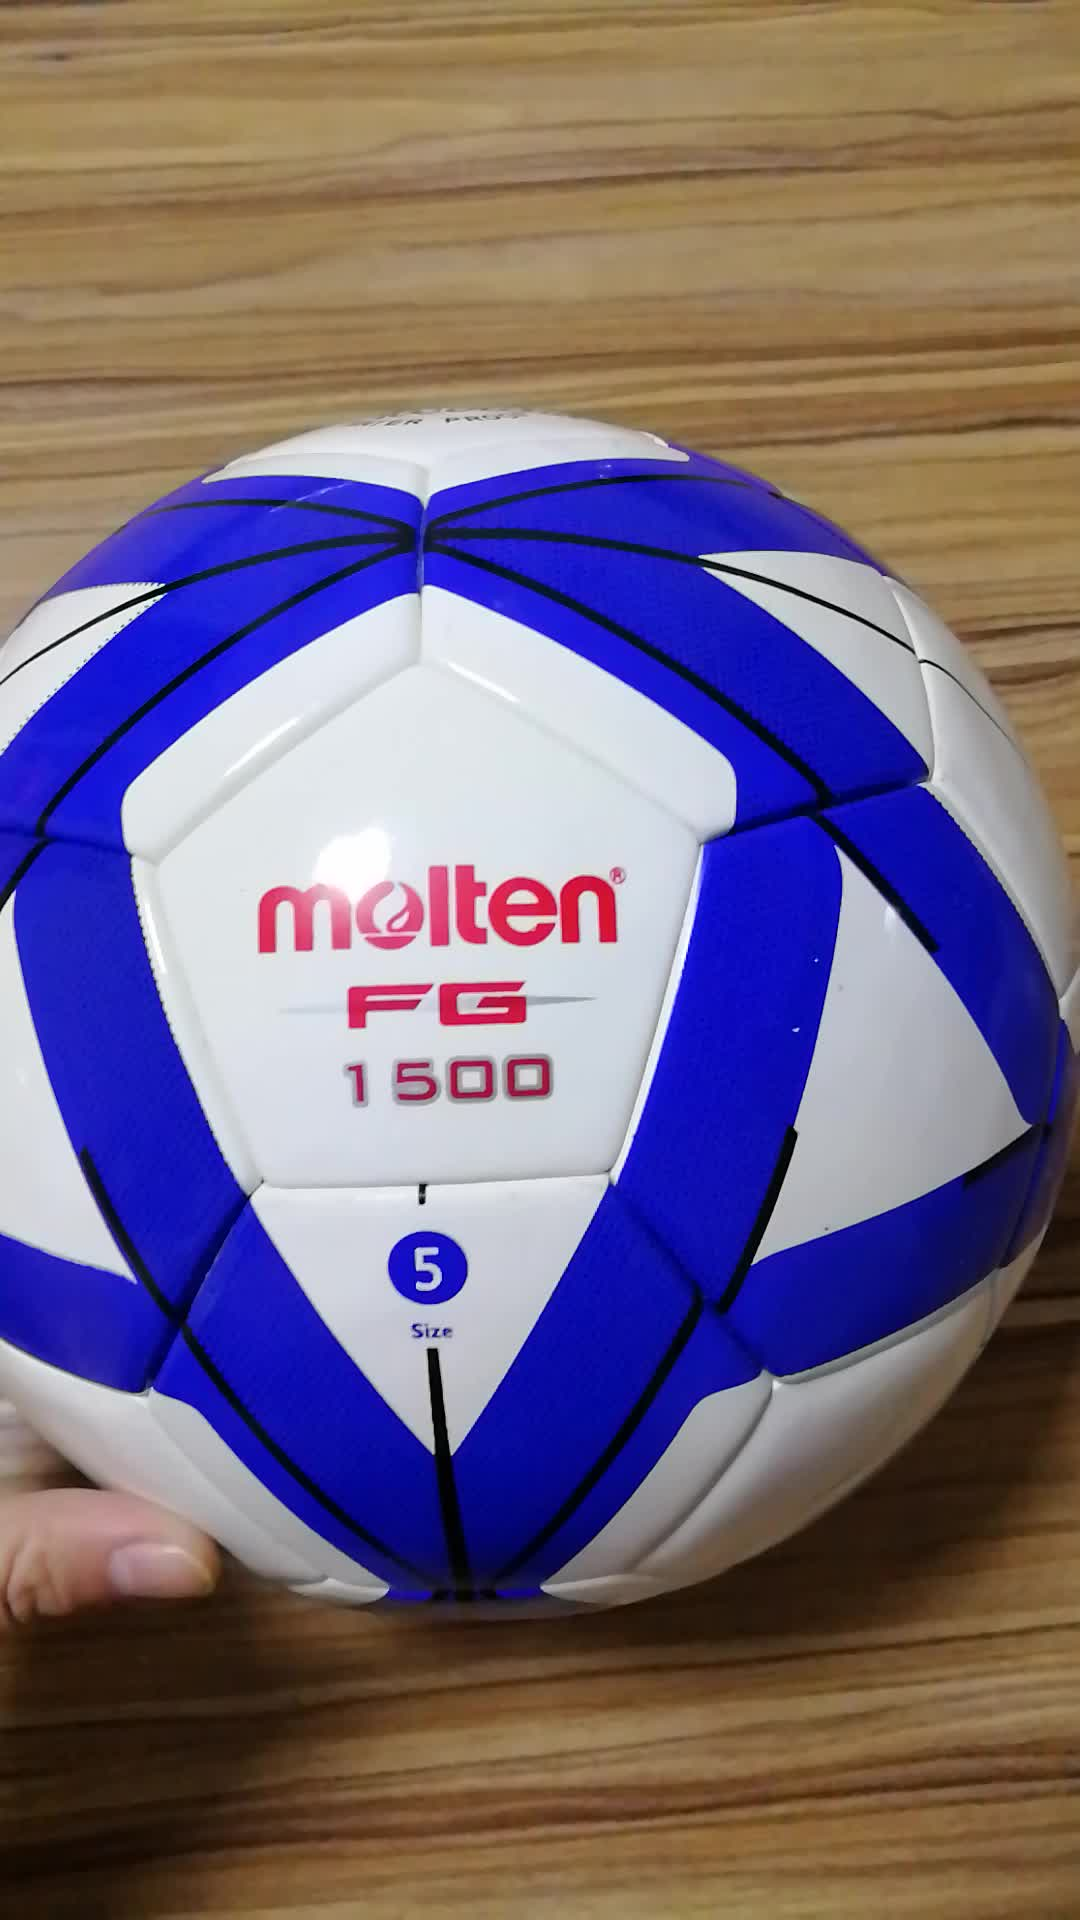 a13e637b8d Wholesale Molten FG1500 3000 size 5 Football Soccer Inflatable Balls  Training China Cheap Footballs Soccer Slime